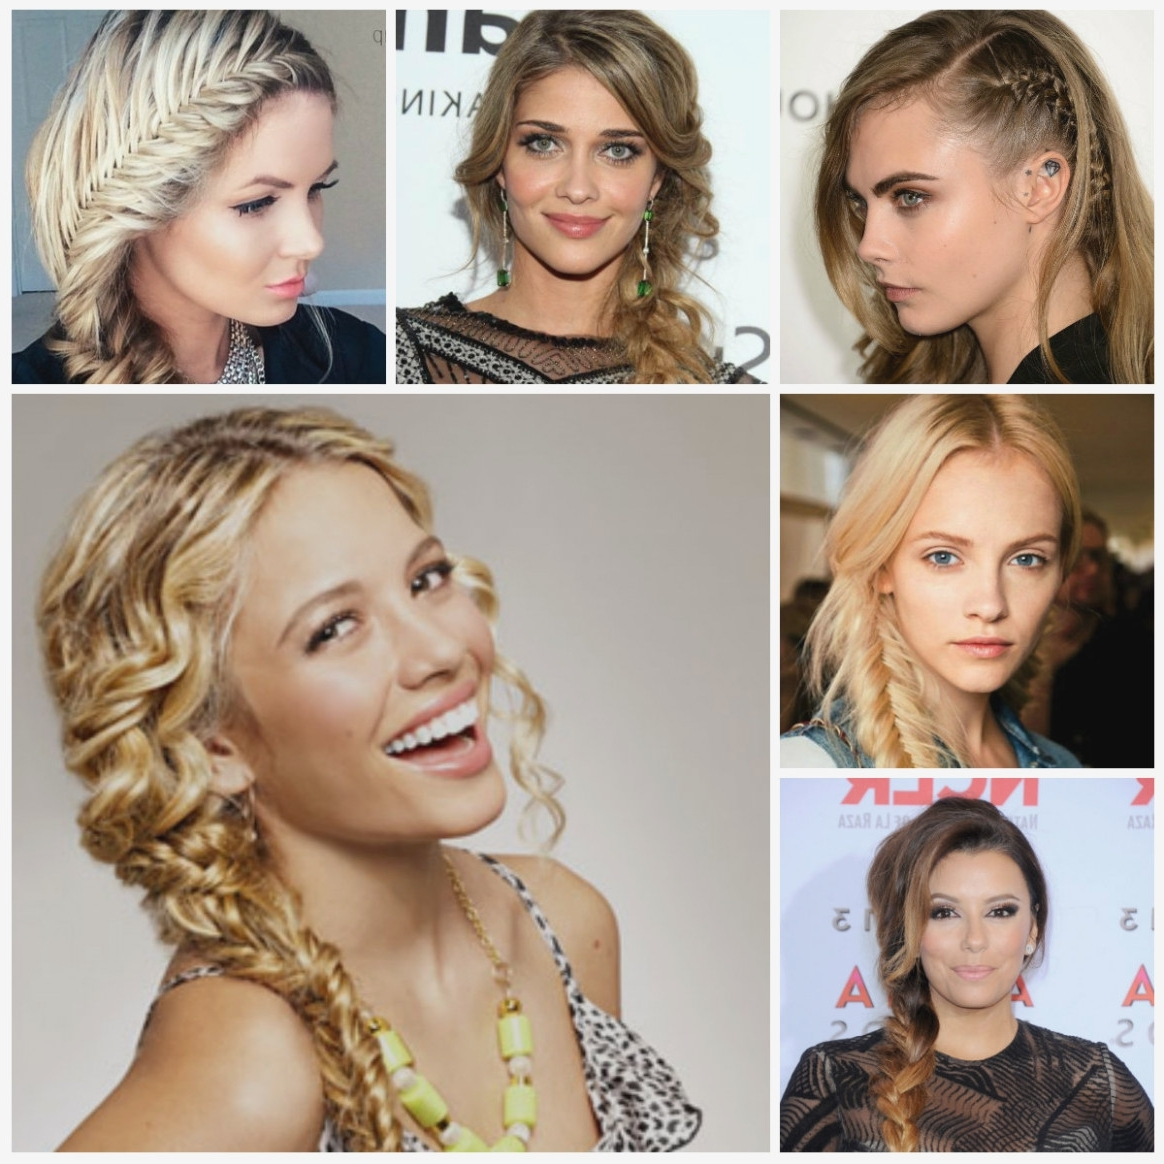 Recent Side Braid Hairstyles For Medium Hair Throughout Hottest Side Braid Hairstyles For Long Hair (View 5 of 15)